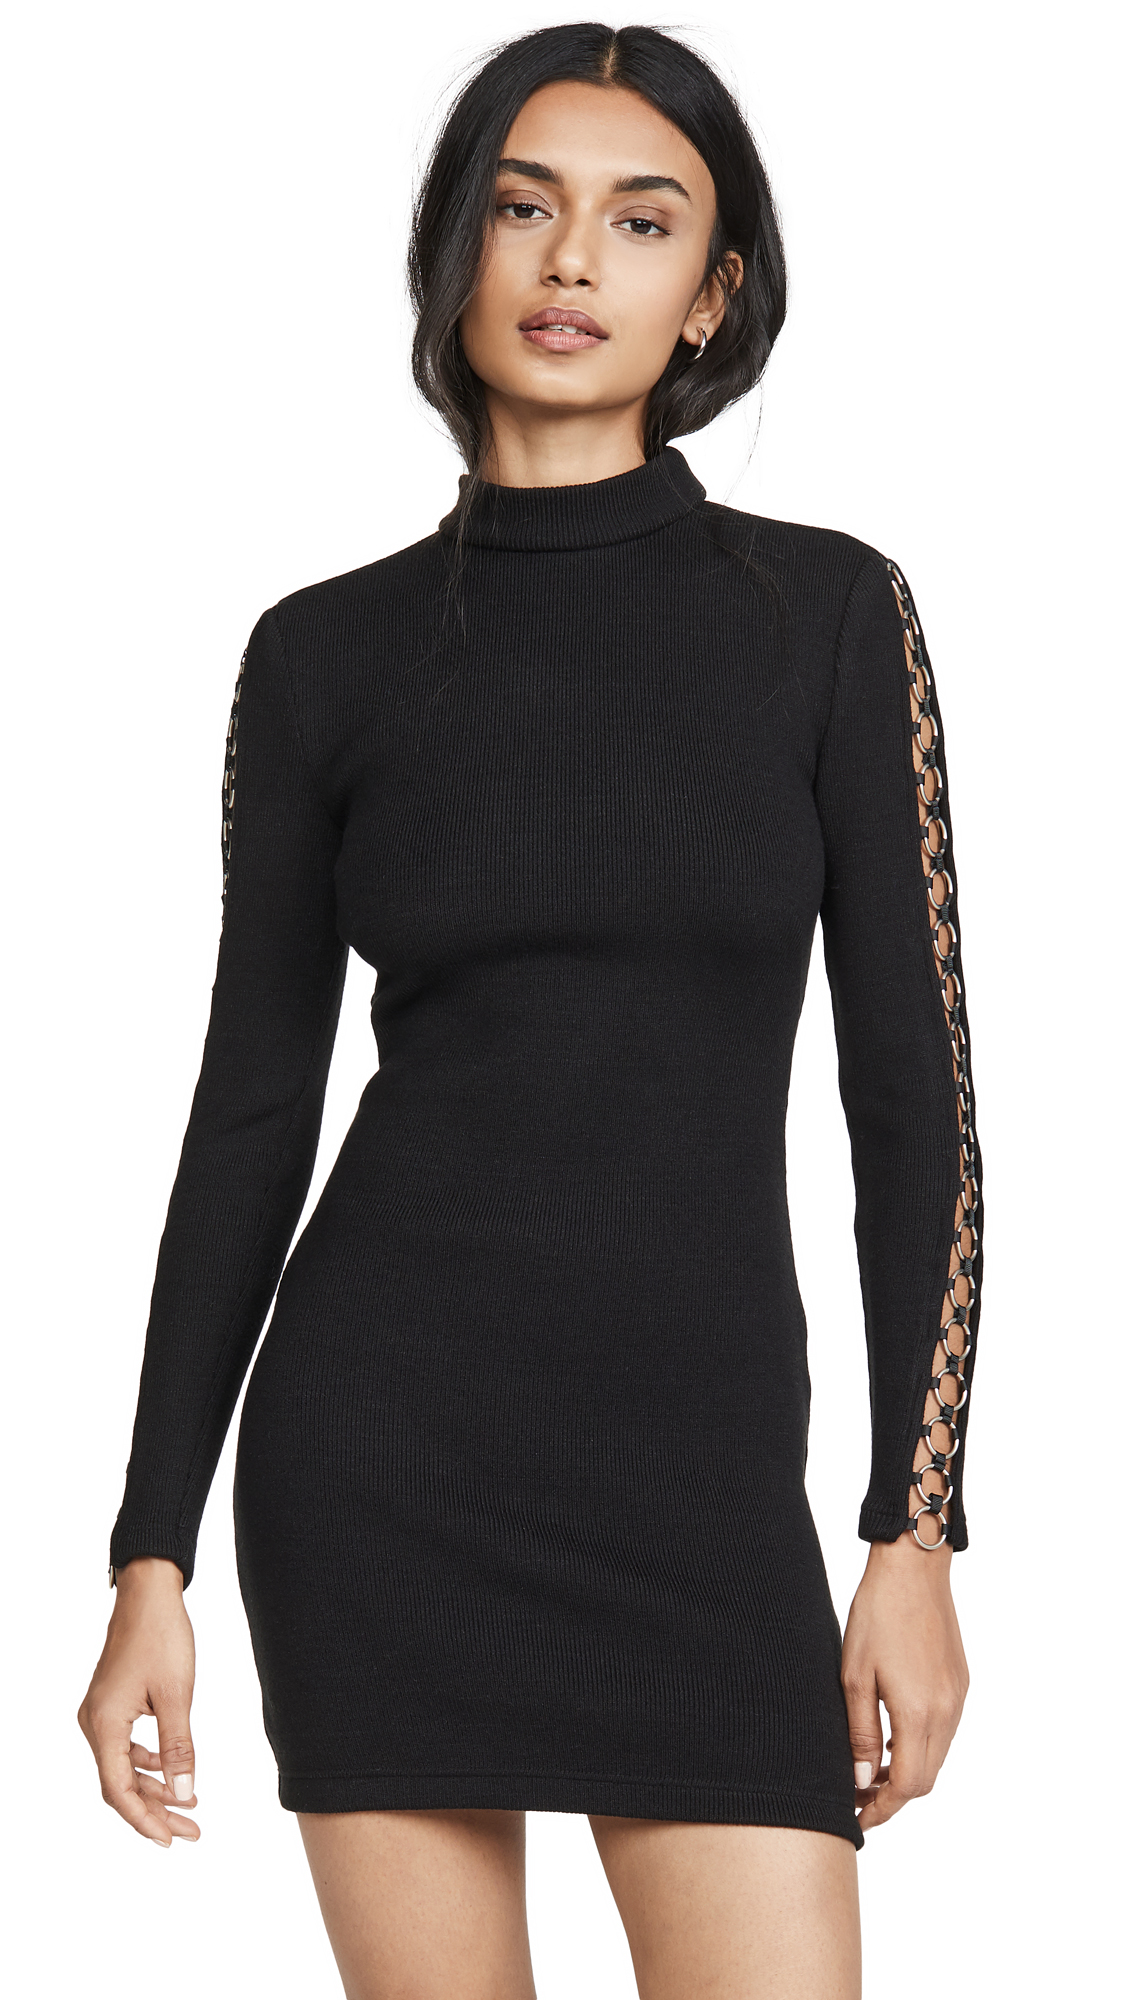 Jonathan Simkhai Directional Rib Long Sleeve Mini Dress - 50% Off Sale